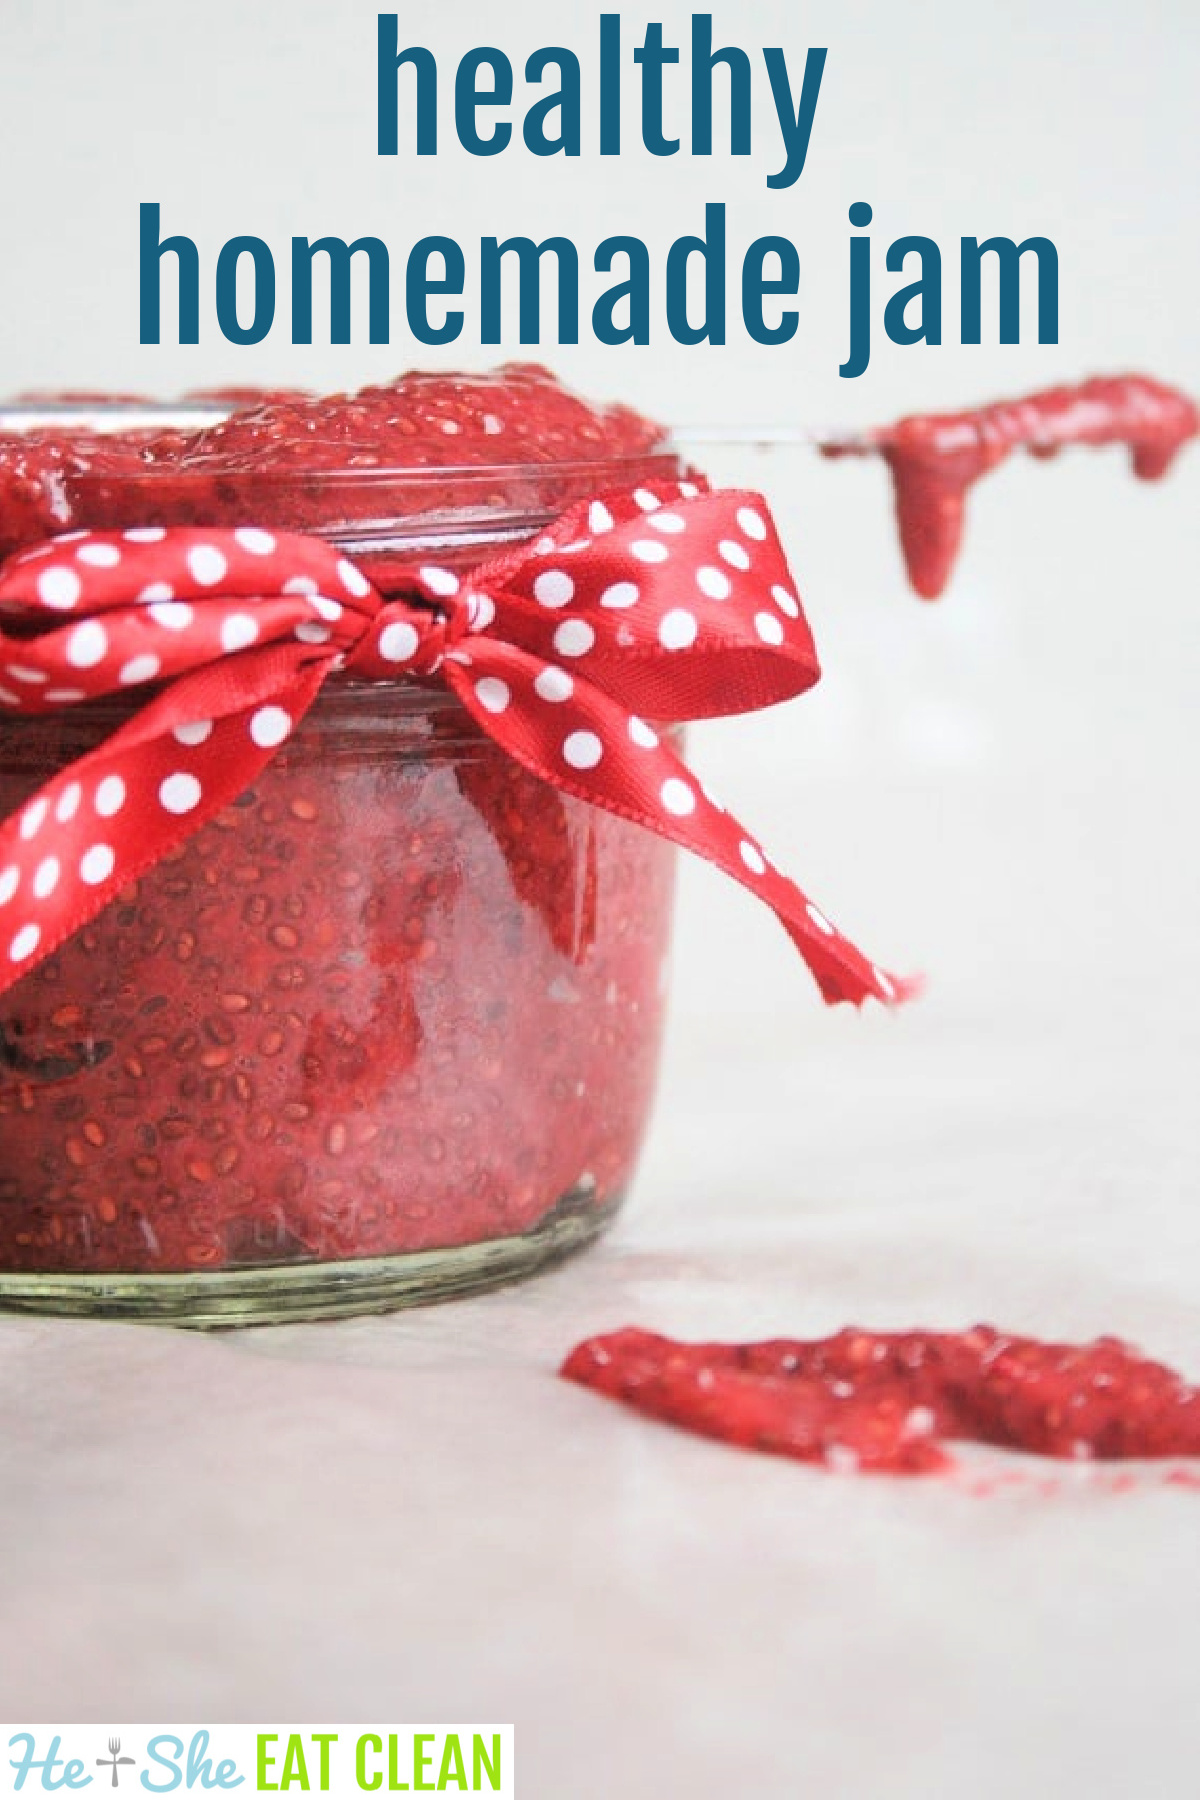 glass jar of red jam with red polka dot bow and a knife across the top of the jar and jam on the table underneath the knife